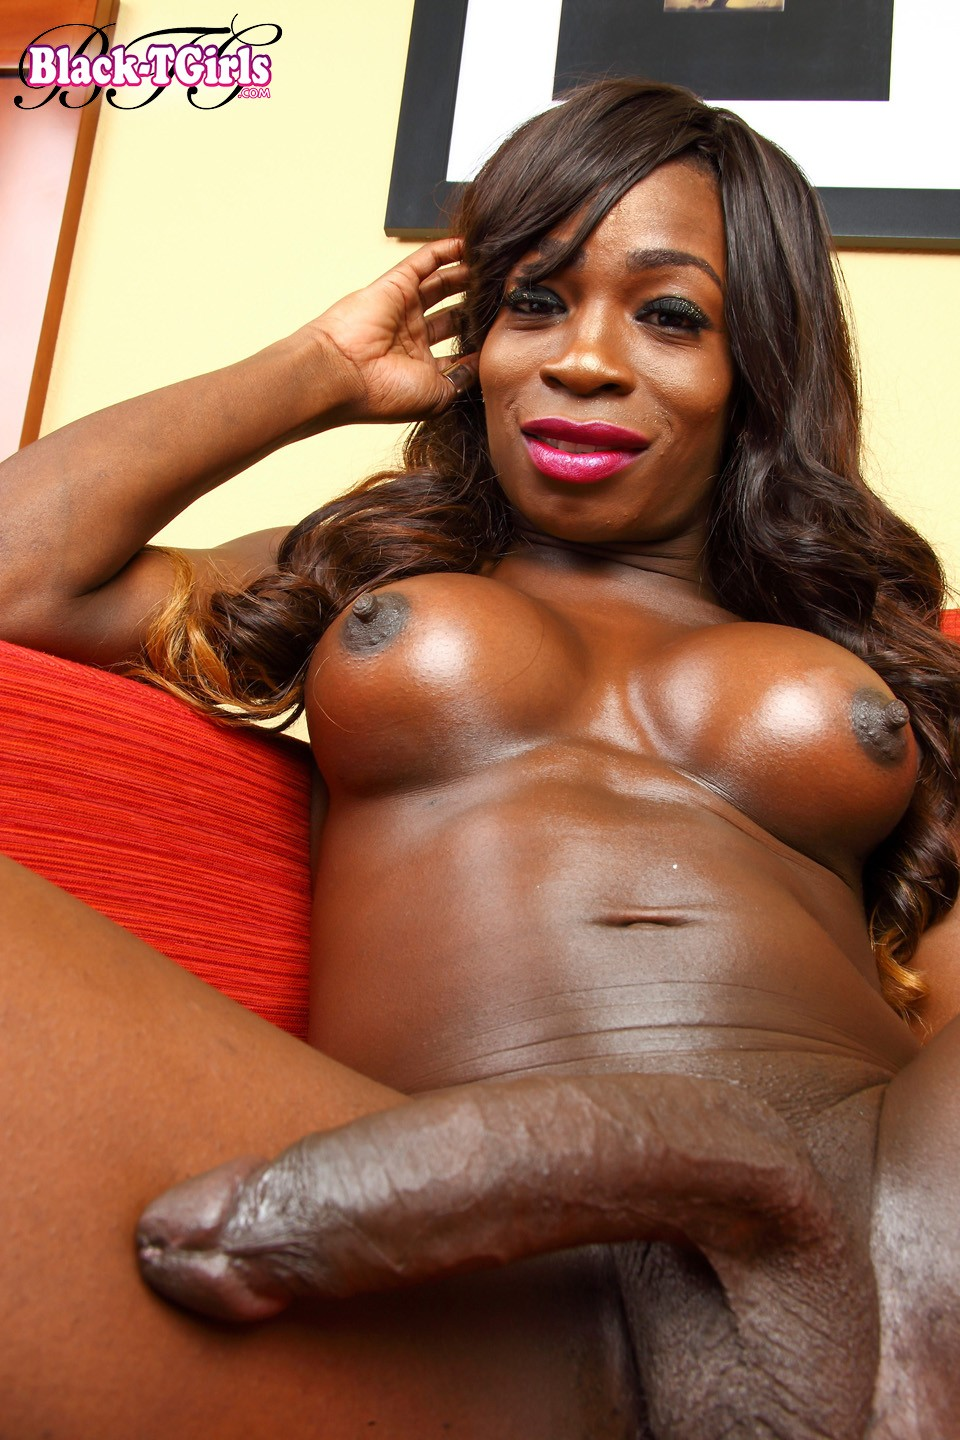 huge-black-shemale-pics